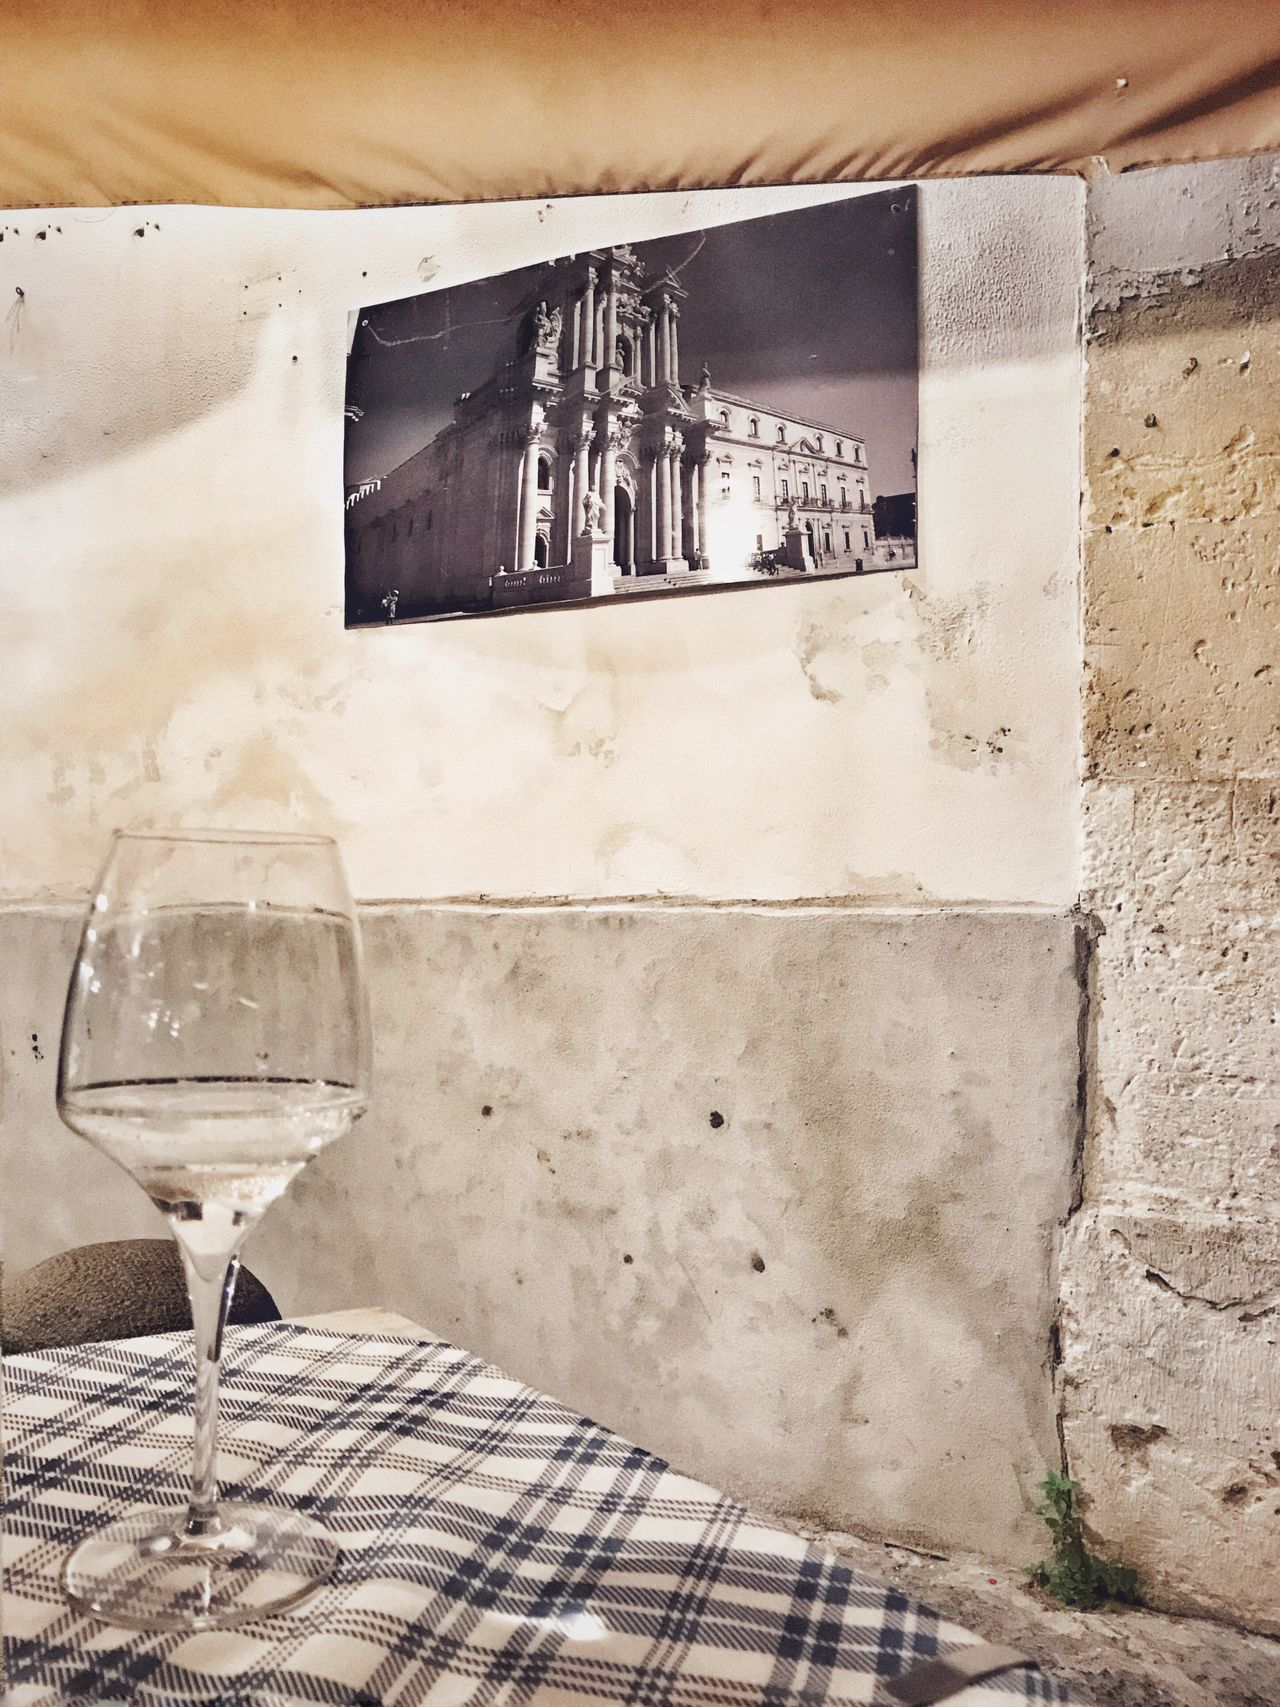 Duomo - Ortigia Eating In Sicily Food And Drink Wineglass No People Outdoors Wine Day Food Close-up Food And Drink Architecture Architecture_collection Architectural Feature Architectural Detail Architecturelovers Nightphotography Night Lights Night Photography Nightlife Nightshot Night Restaurant